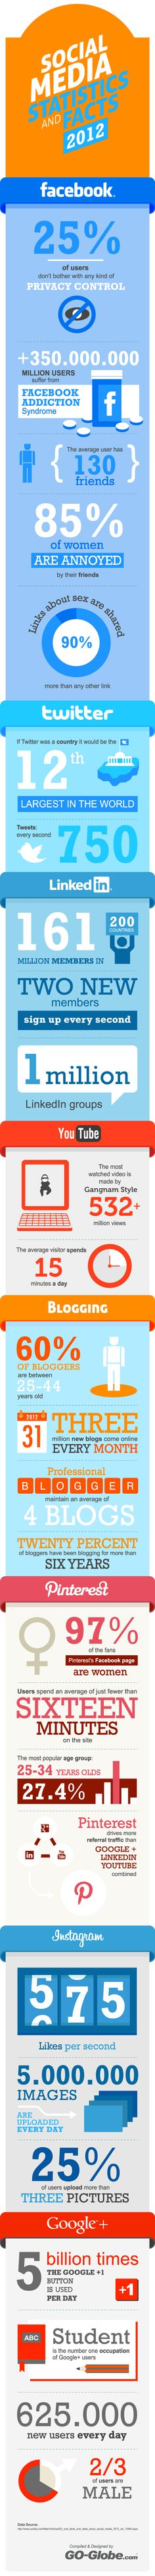 Social Media Statistics and Facts 2012 #infography